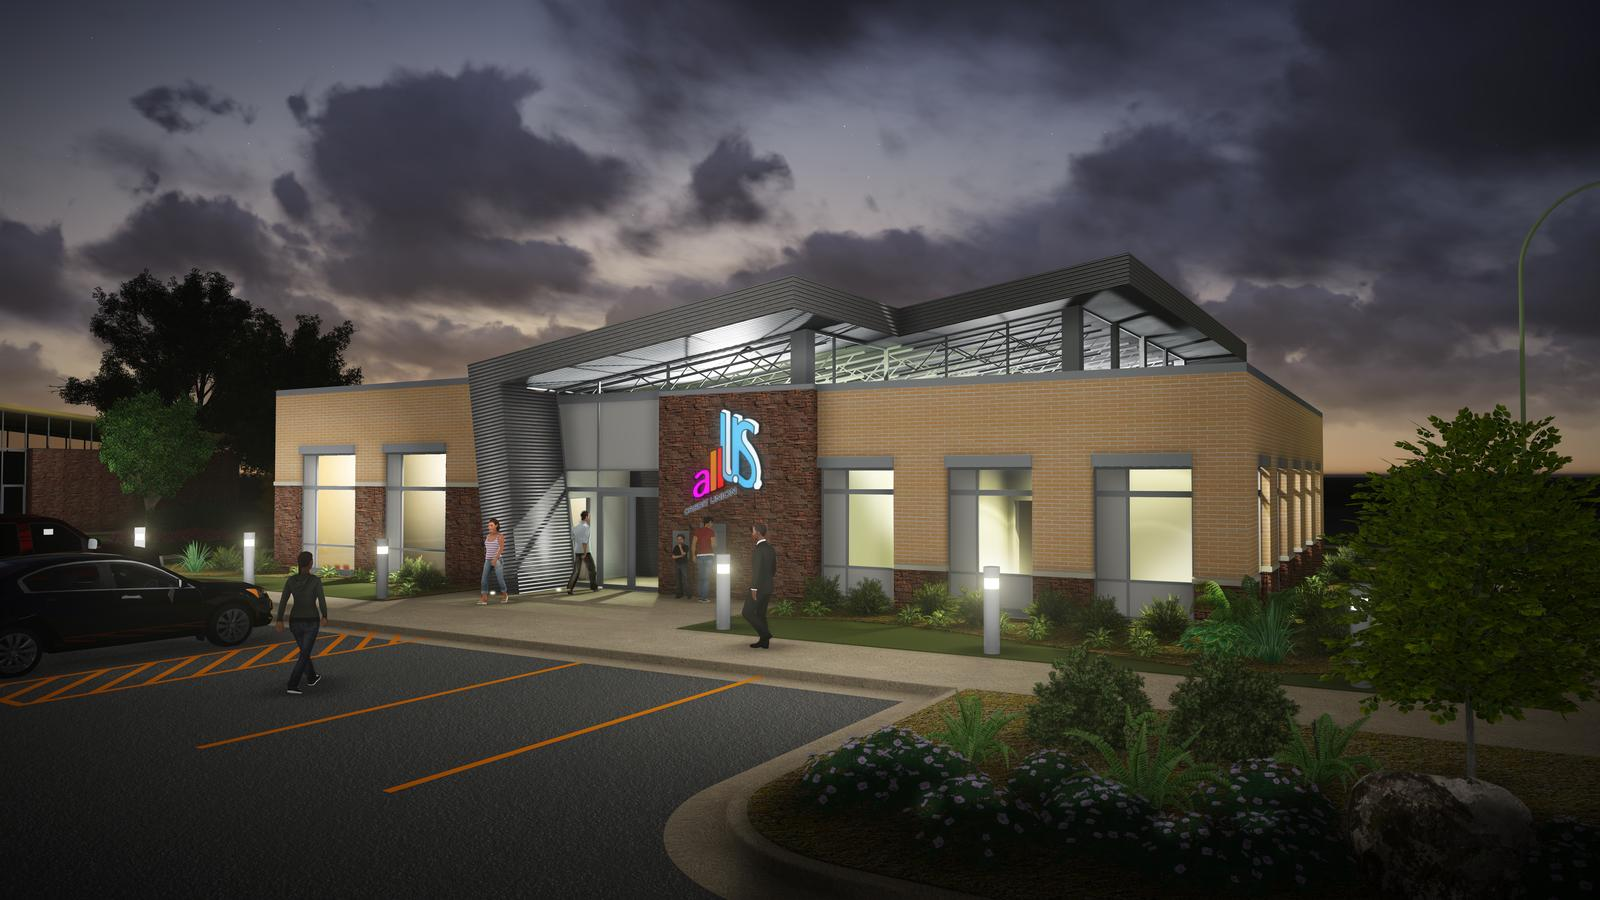 allU.S. Moves Forward With Plans for New Branch In North Salinas!